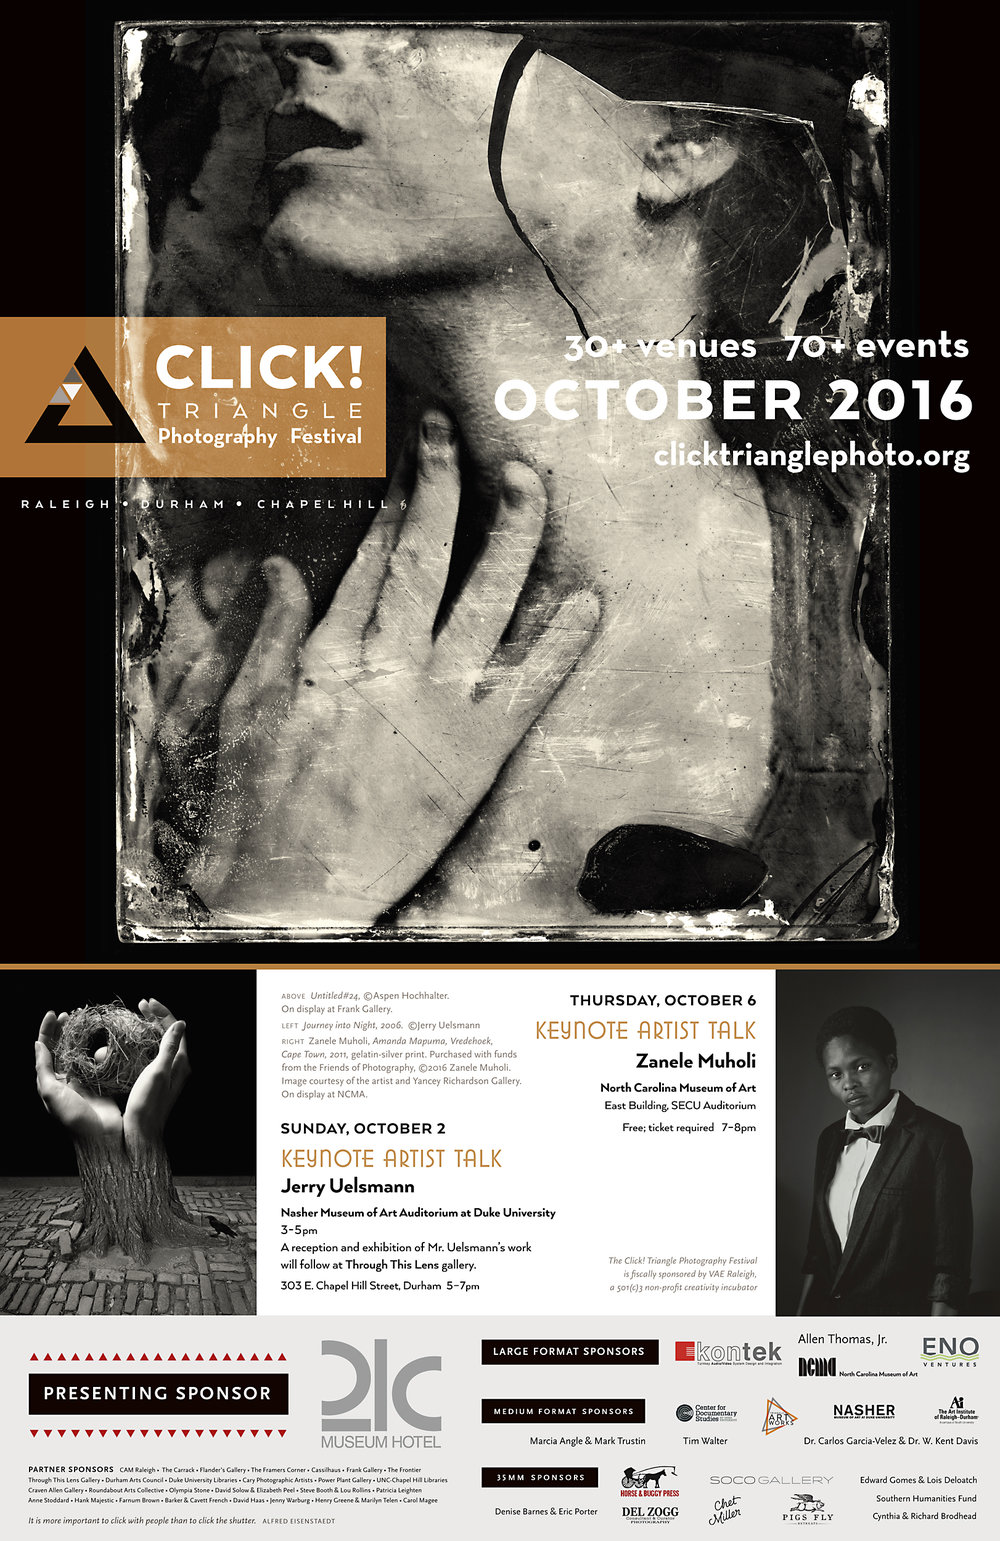 As well as being a co-sponsor of the festival, H&B has designed the program guides and posters for Click! since 2015. 12 x 18 inch poster.